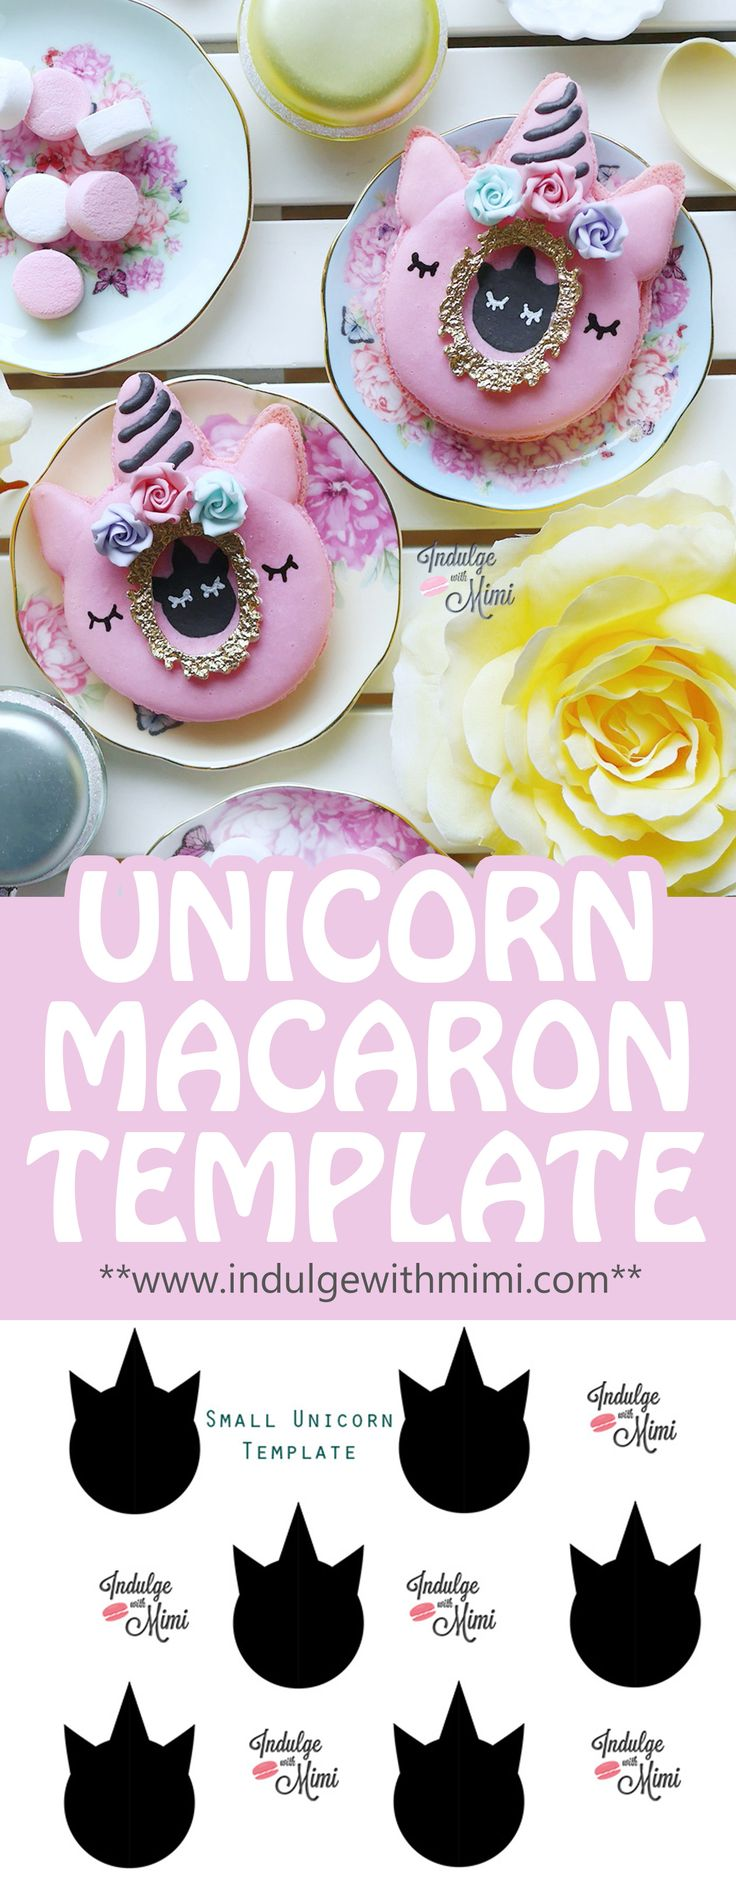 Free Unicorn Macaron Template for you to easily make this season's hottest treat.